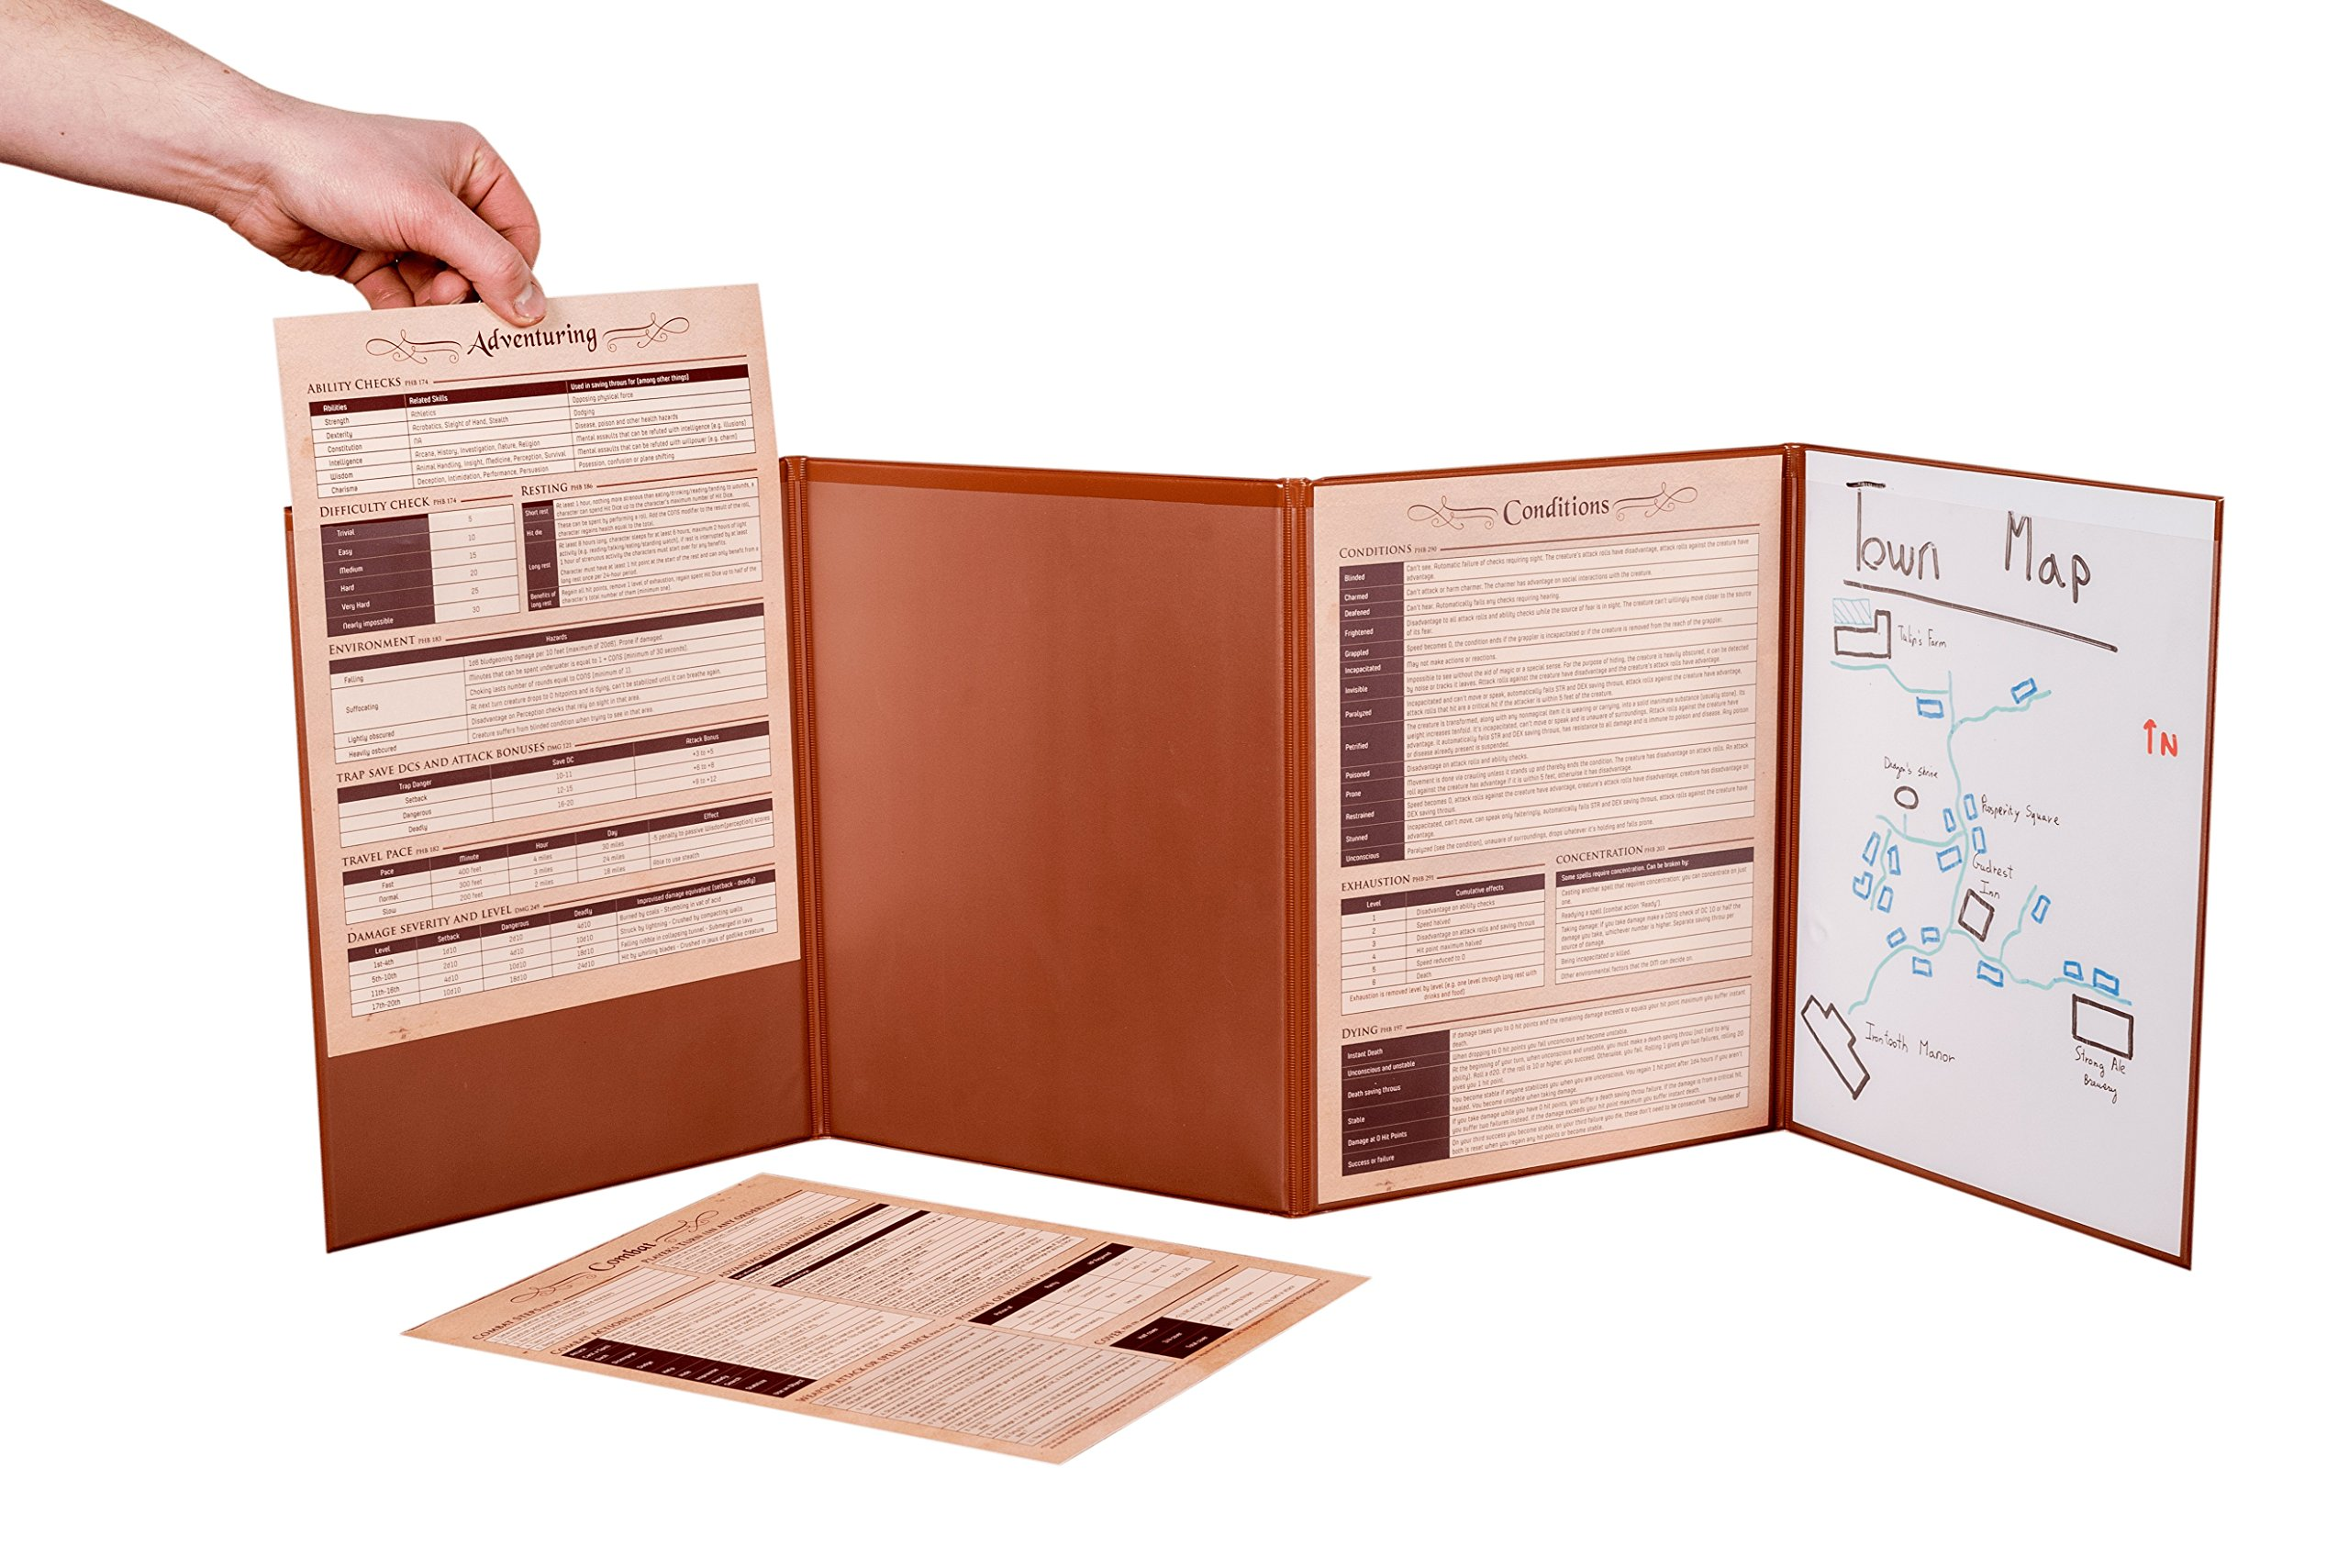 Hexers Game Master Screen - Dungeons and Dragons D&D DND DM Pathfinder RPG Role Playing Compatible - 4 Customizable Panels - Inserts Included That Slide into The Pouches - Dry Erase Tracker Sheet by Hexers (Image #3)